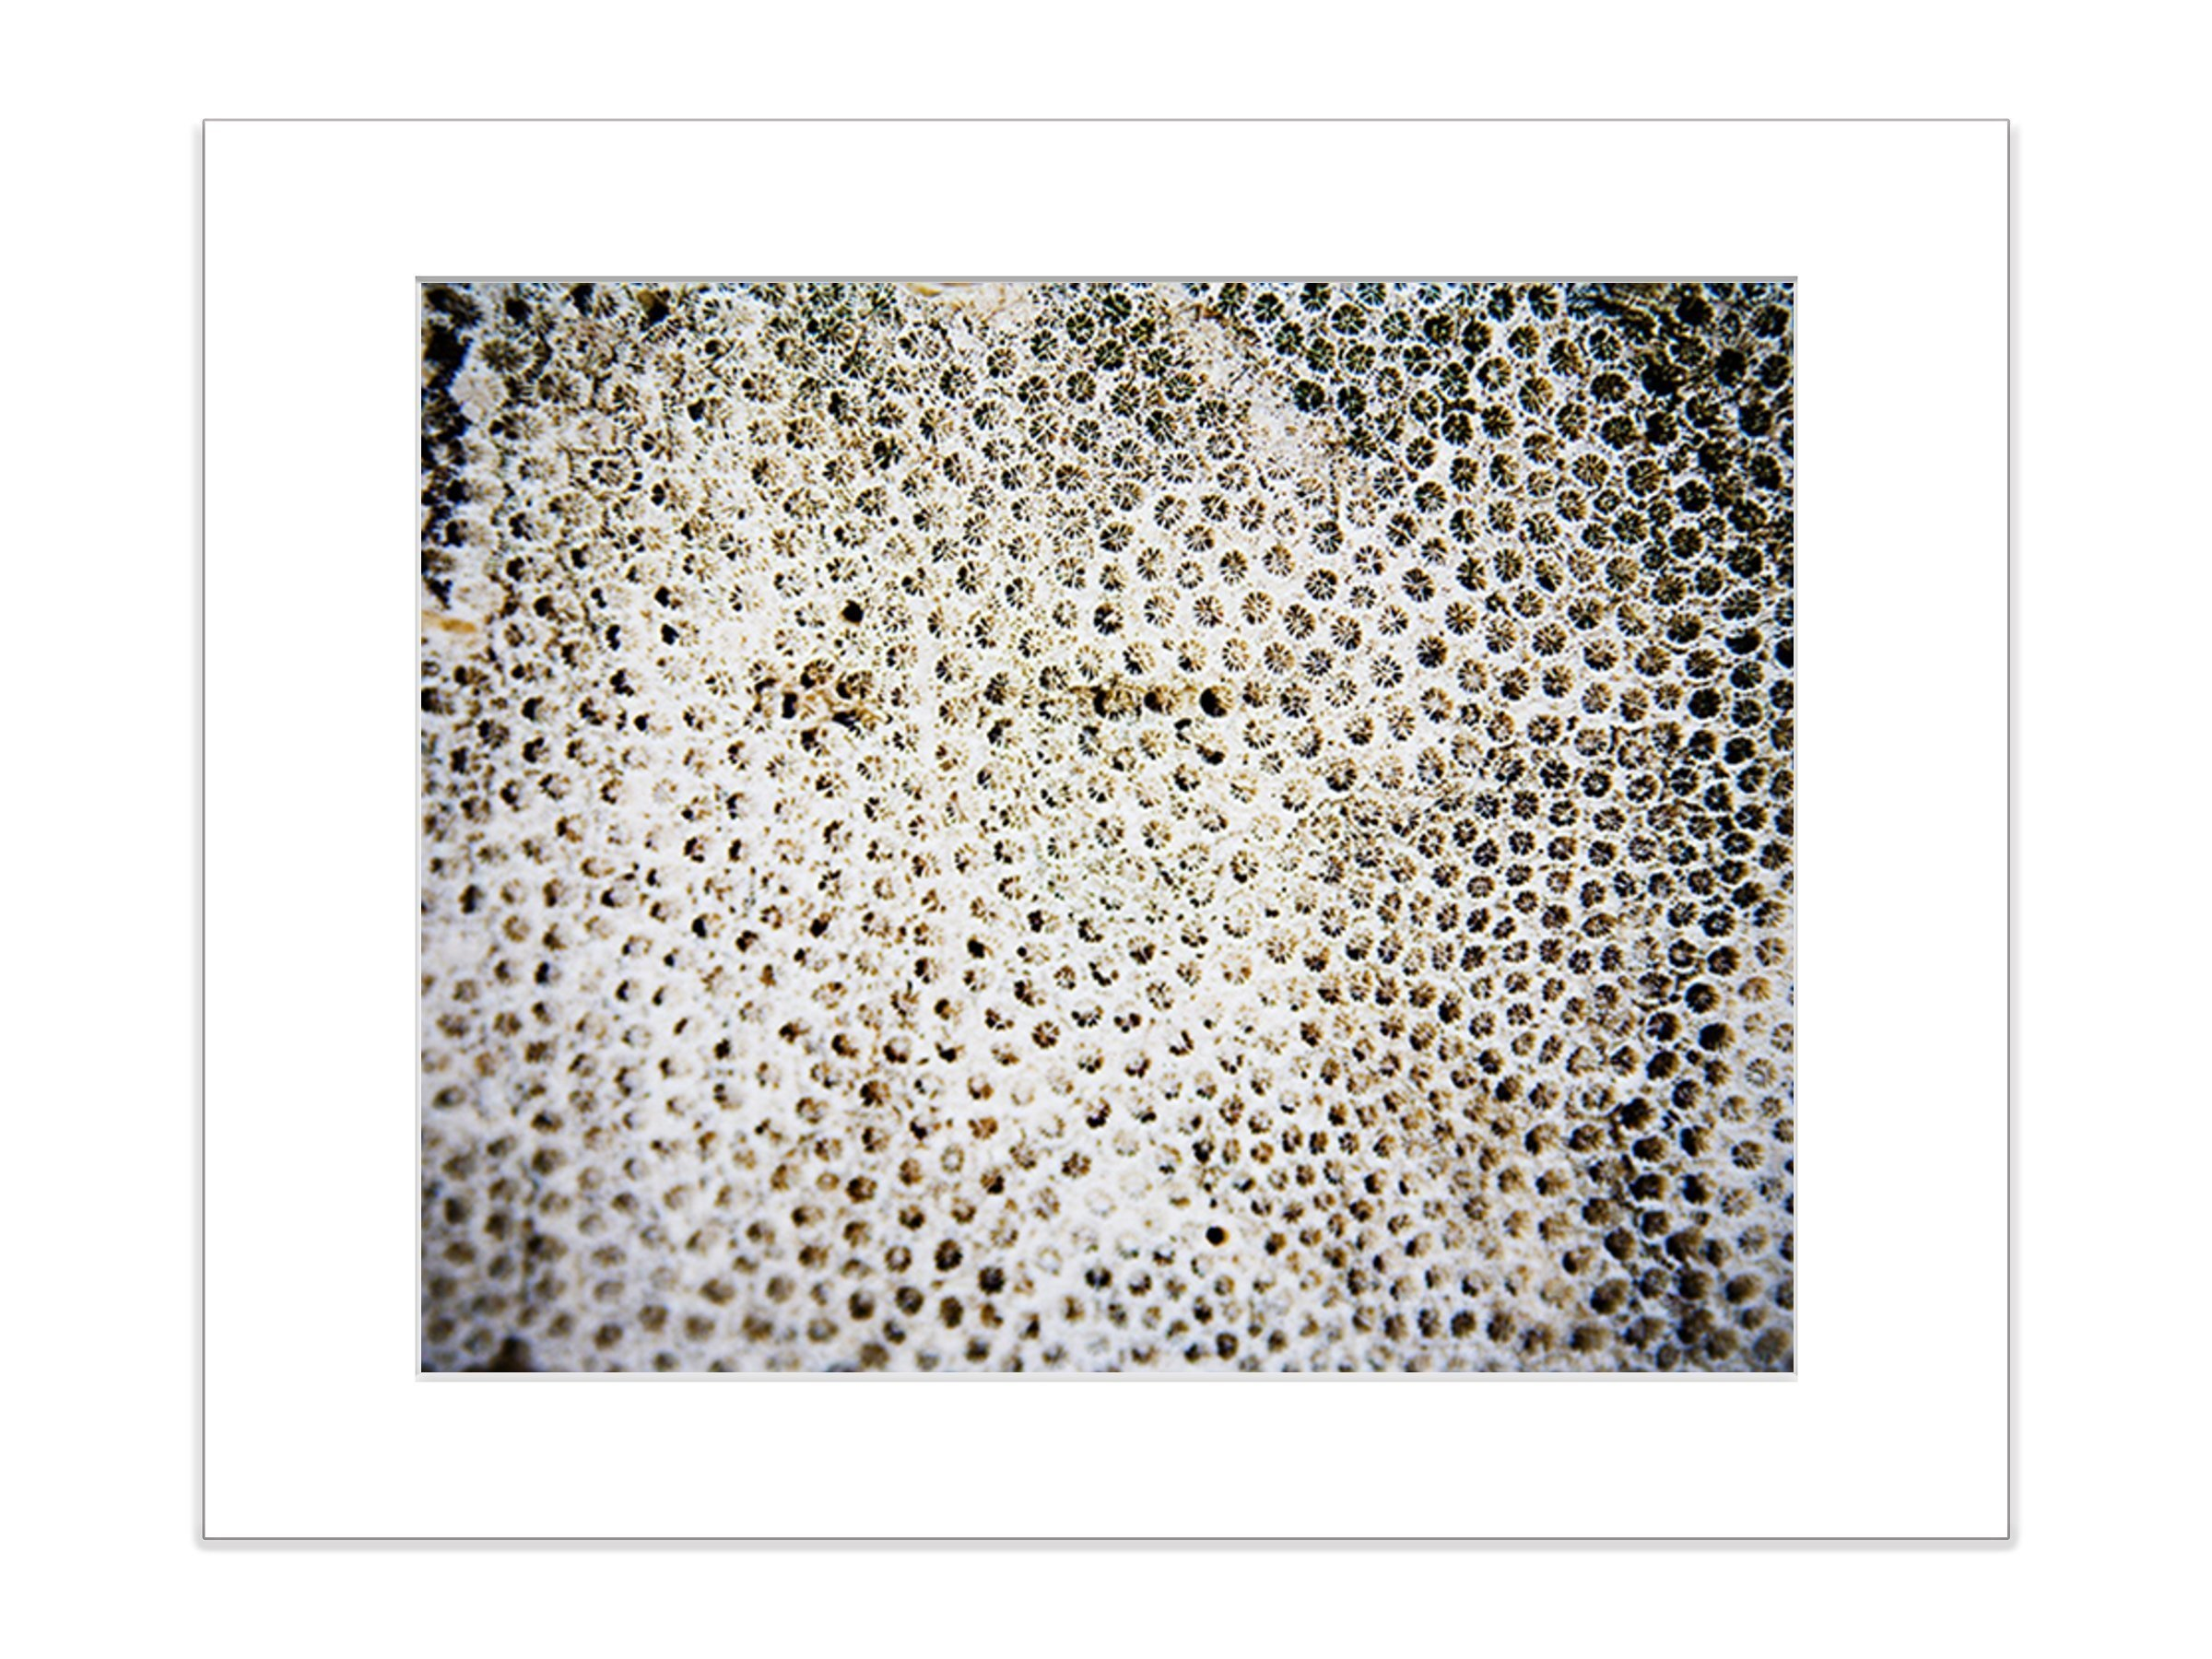 Abstract Coral Reef Marine Life Underwater Beach 8x10 Matted Photograph